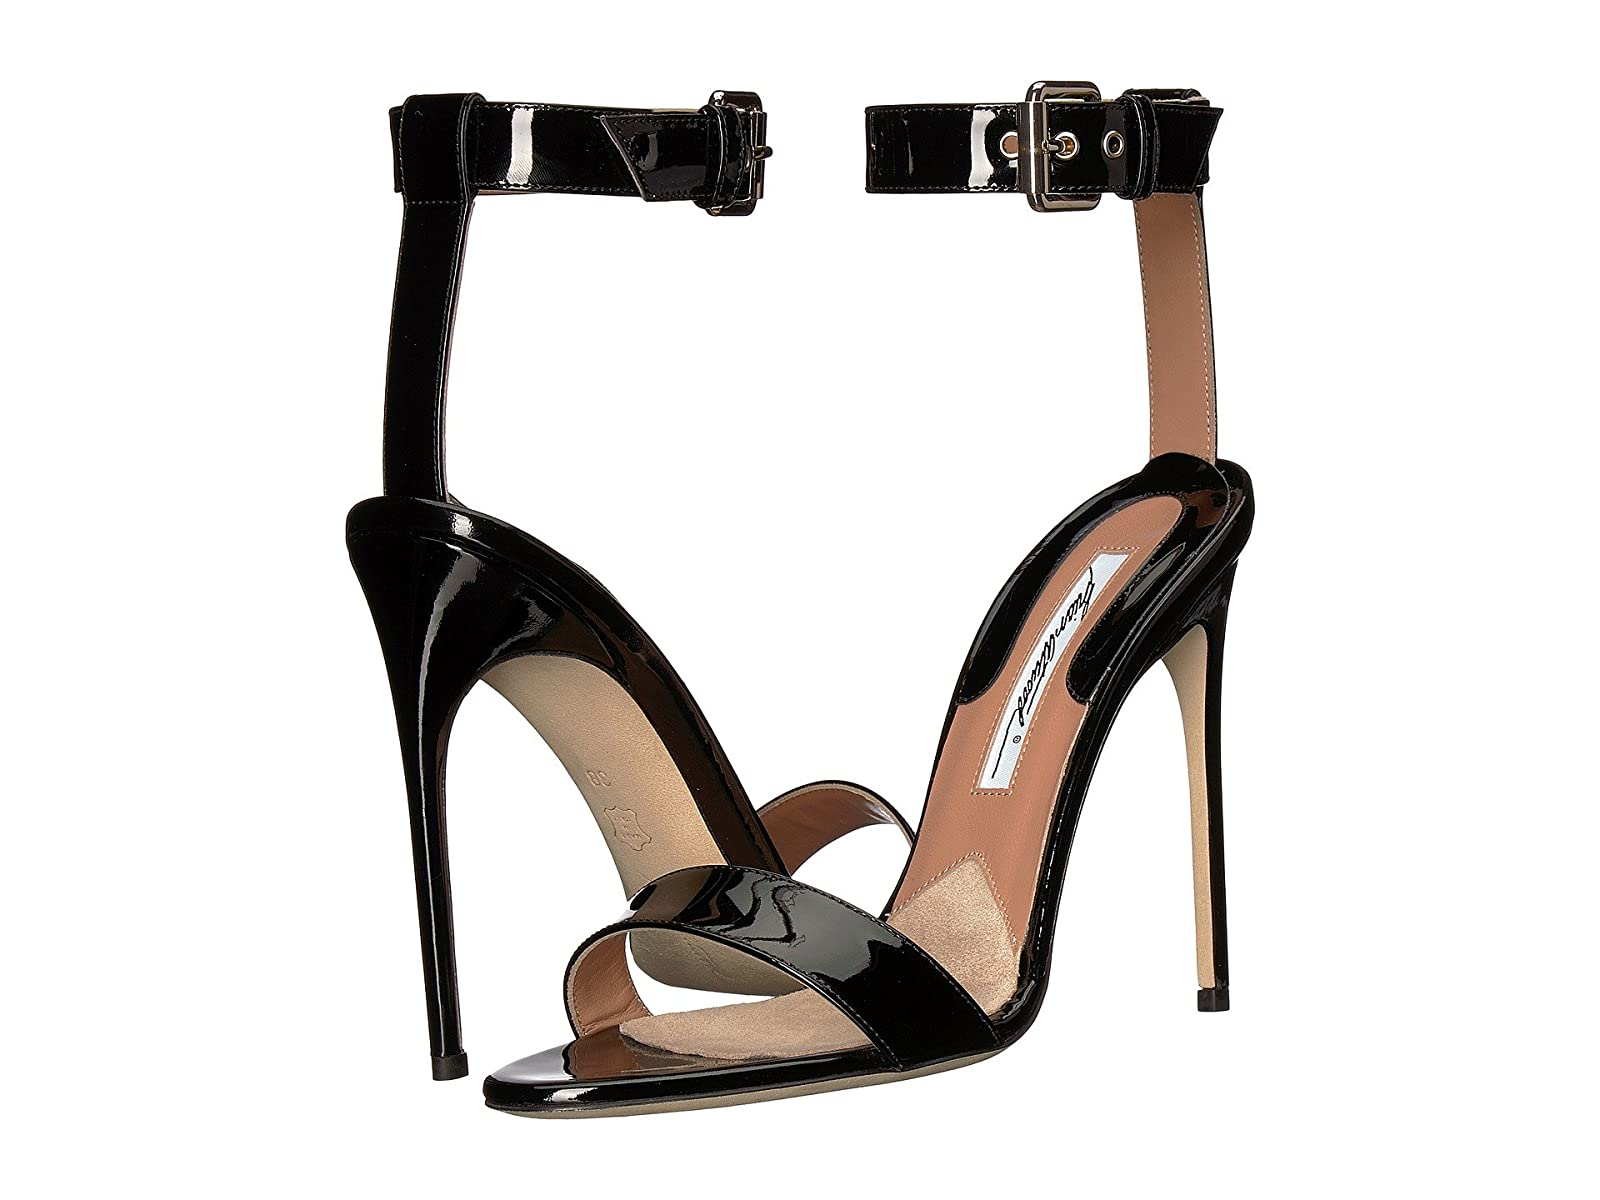 Brian Atwood BabeAtmospheric grades have affordable shoes